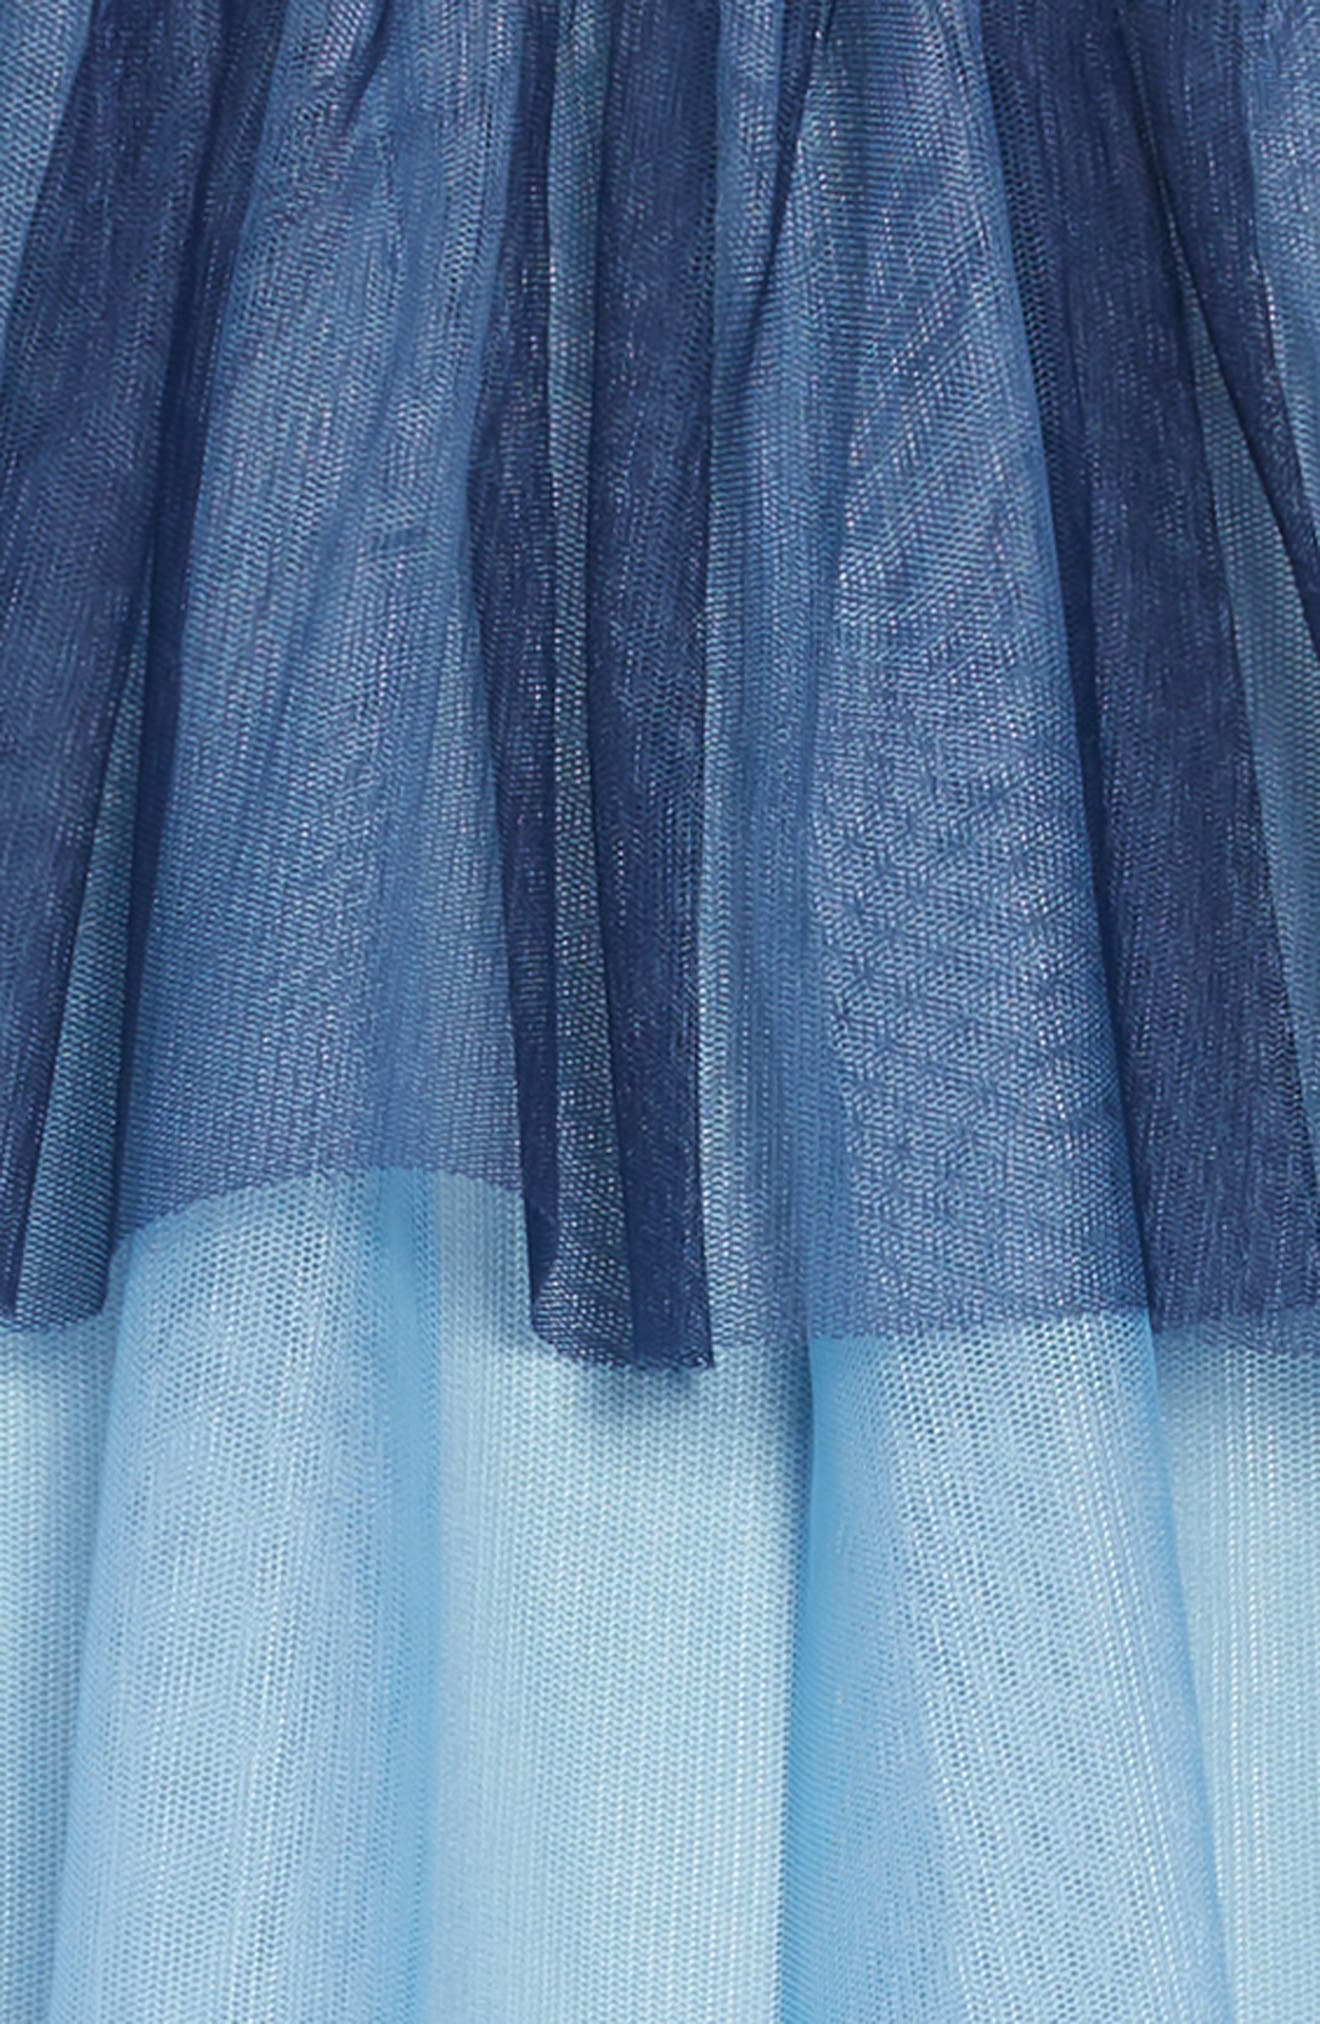 Jersey & Tulle Dress,                             Alternate thumbnail 3, color,                             SCHOOL NAVY OMBRE